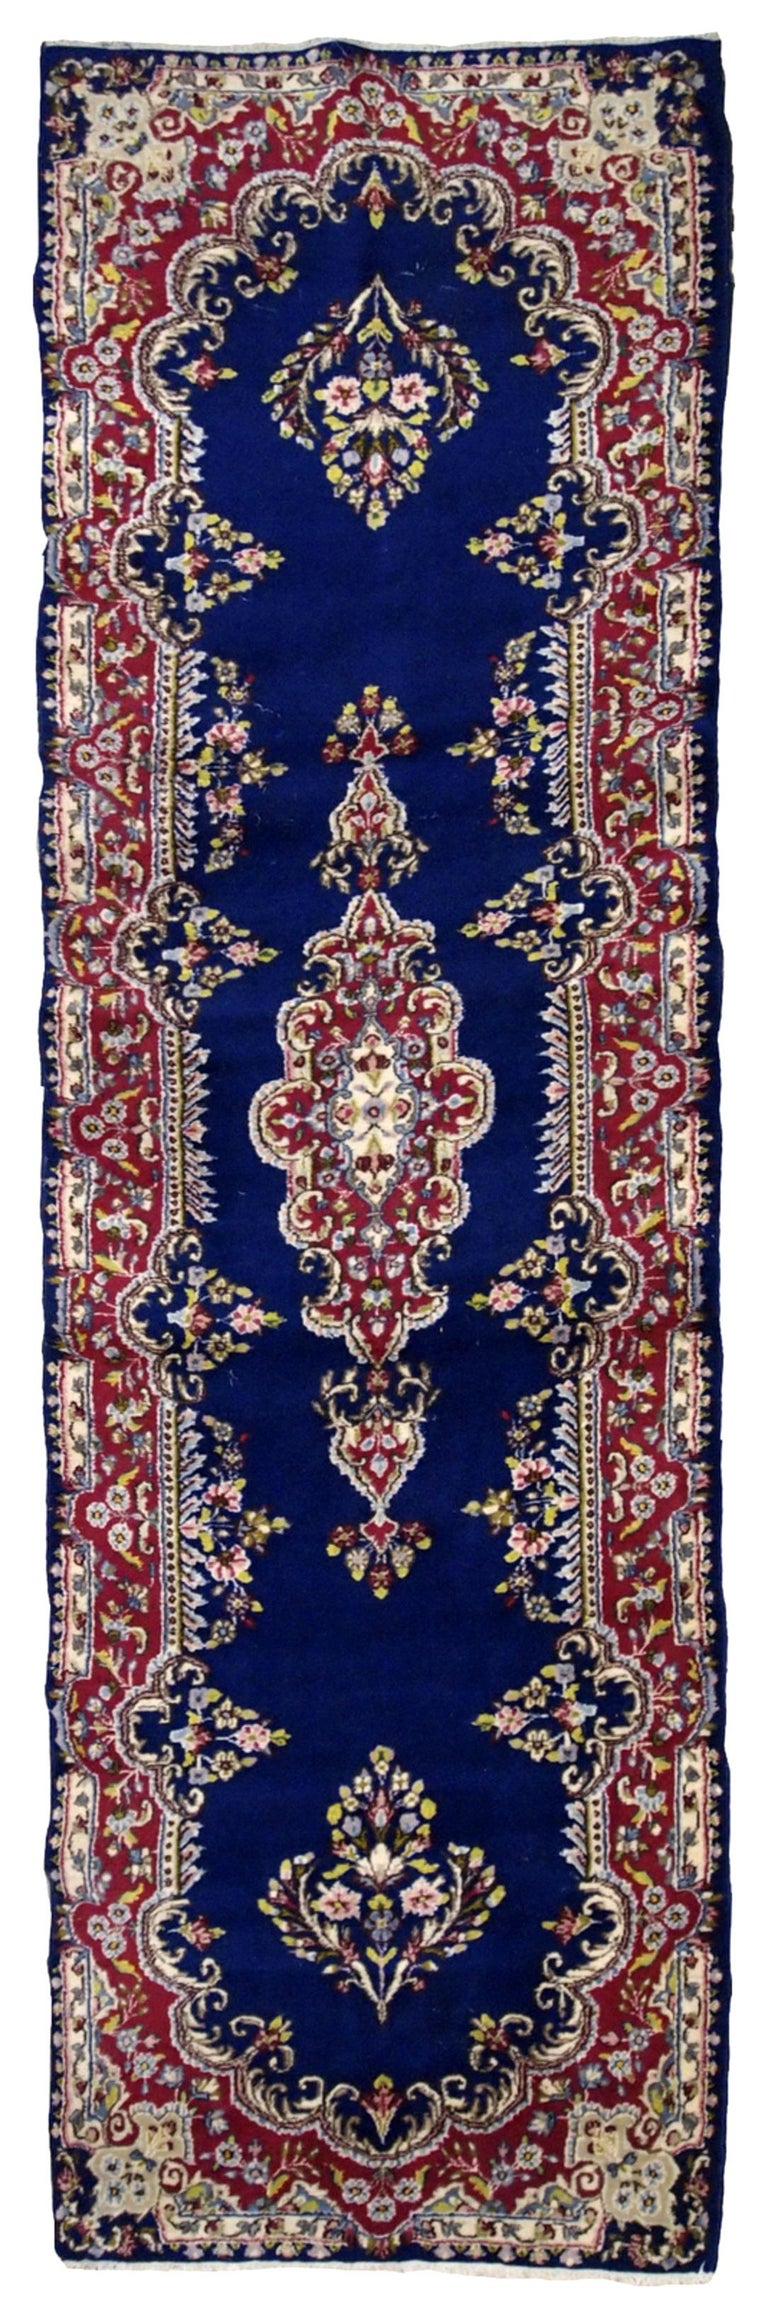 Handmade antique Persian Kerman runner in bright blue and red wool. The runner is from the middle of 20th century in original good condition.